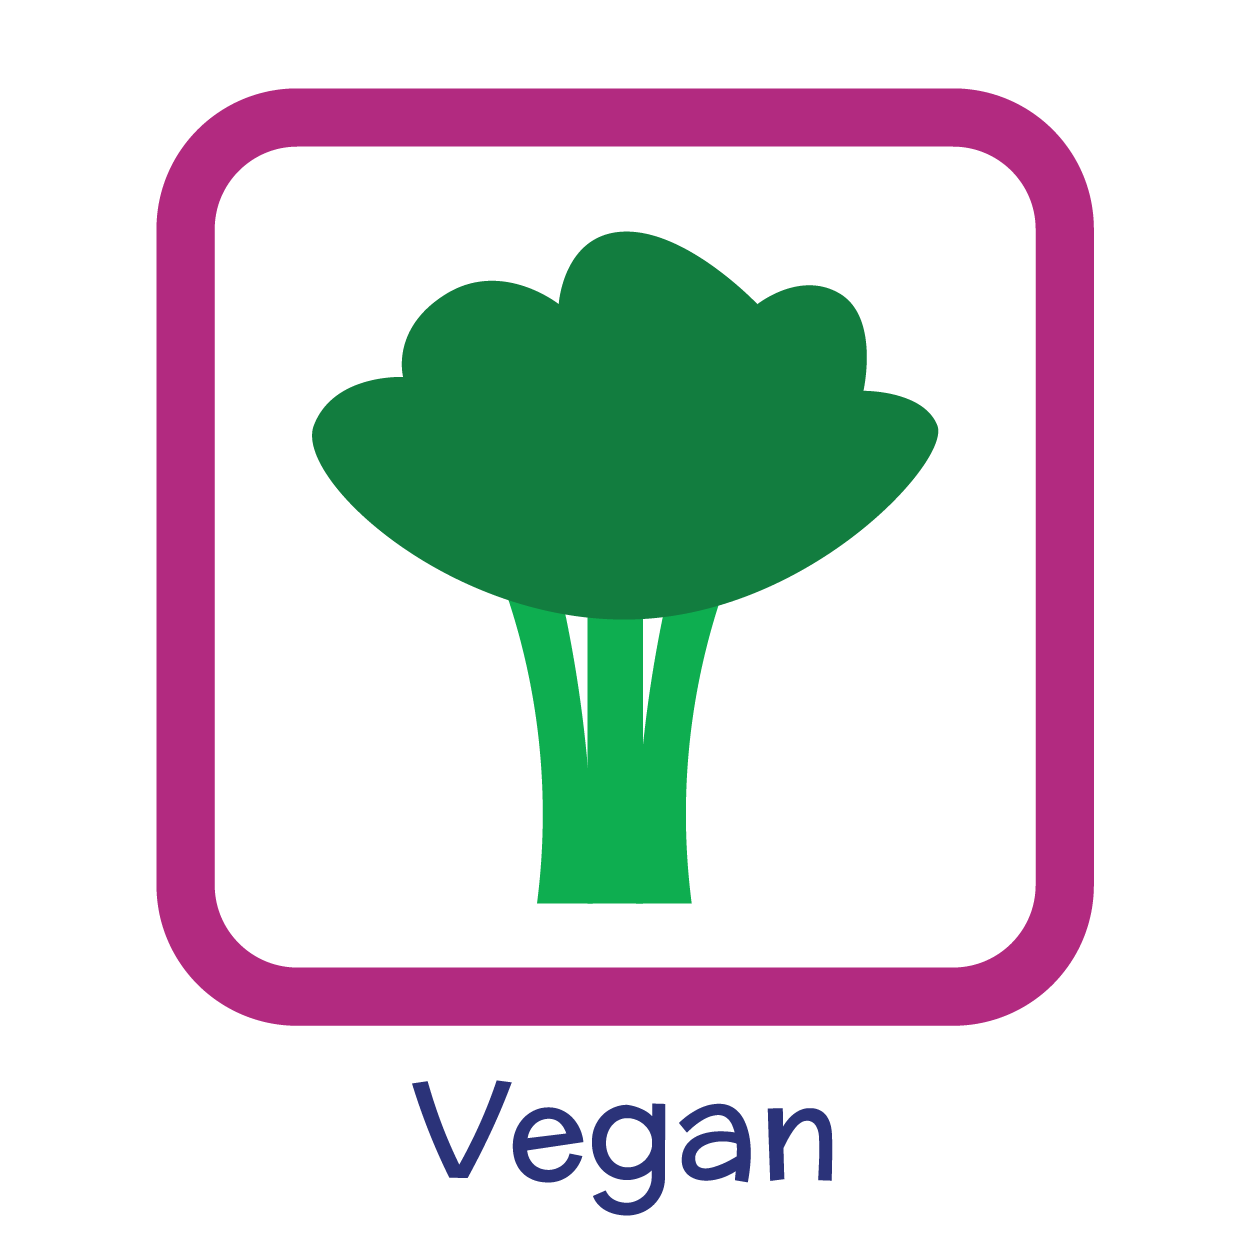 vegan-icon-nomster-chef